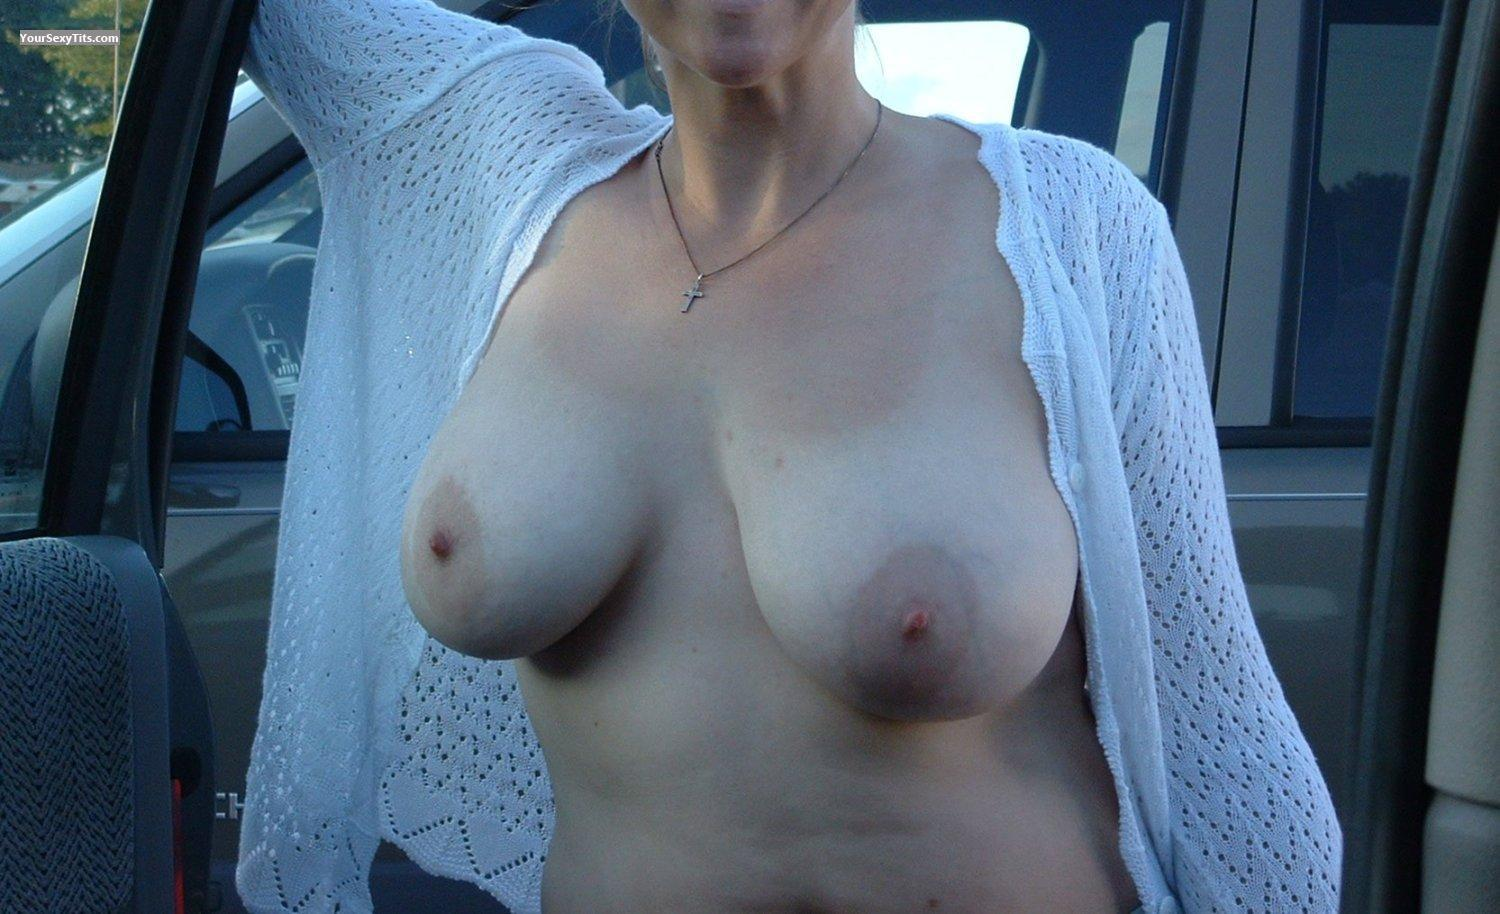 Tit Flash: Big Tits - Sexy from Canada